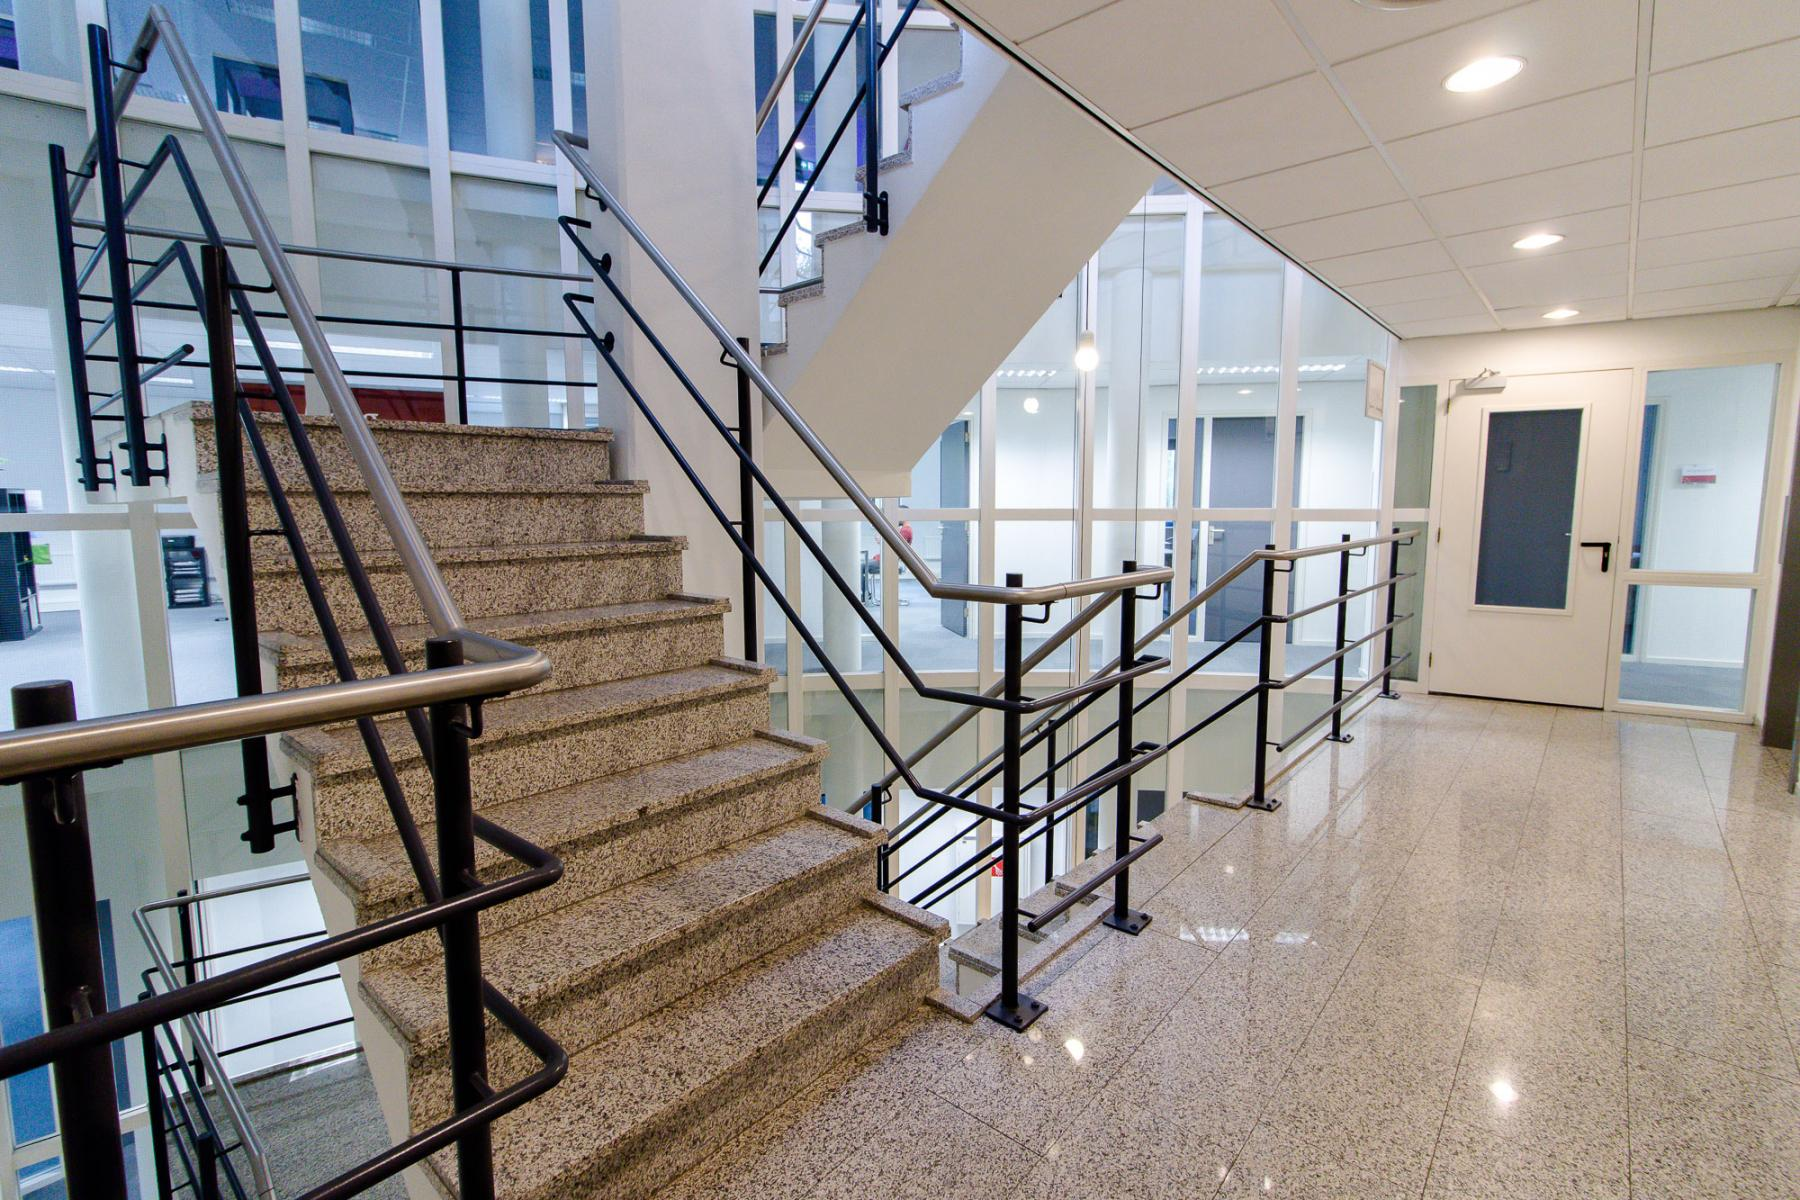 Office space with stair and elevator